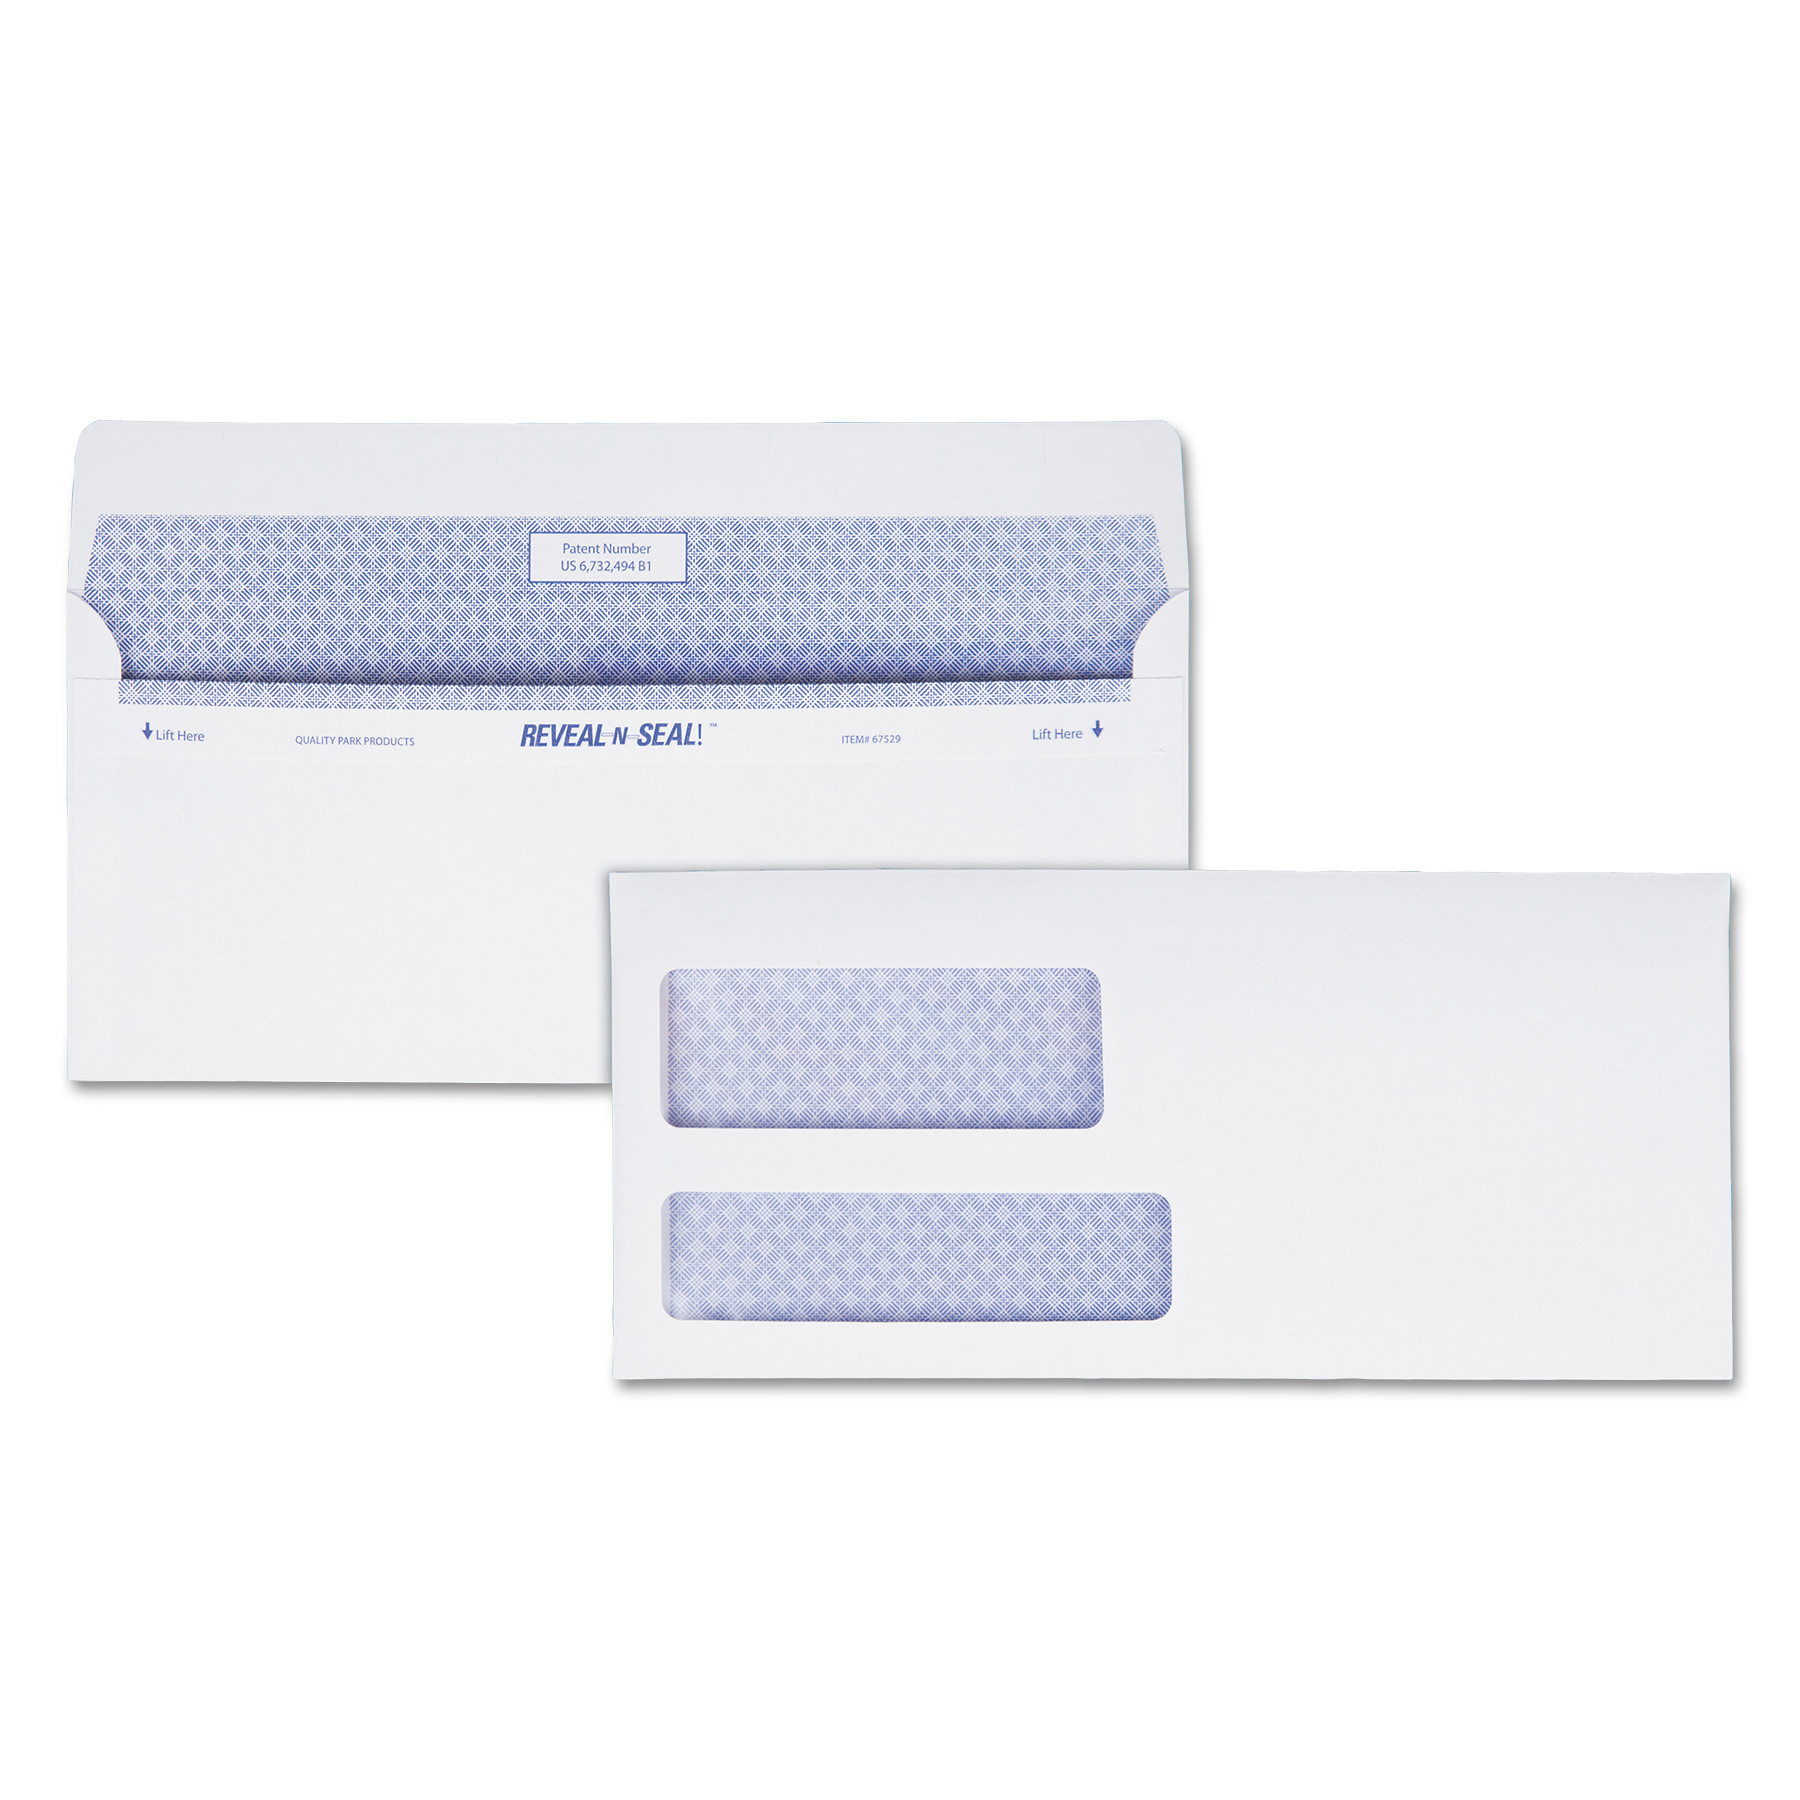 Reveal-N-Seal Envelope, #9, Commercial Flap, Self-Adhesive Closure, 3.88 x 8.88, White, 500/Box